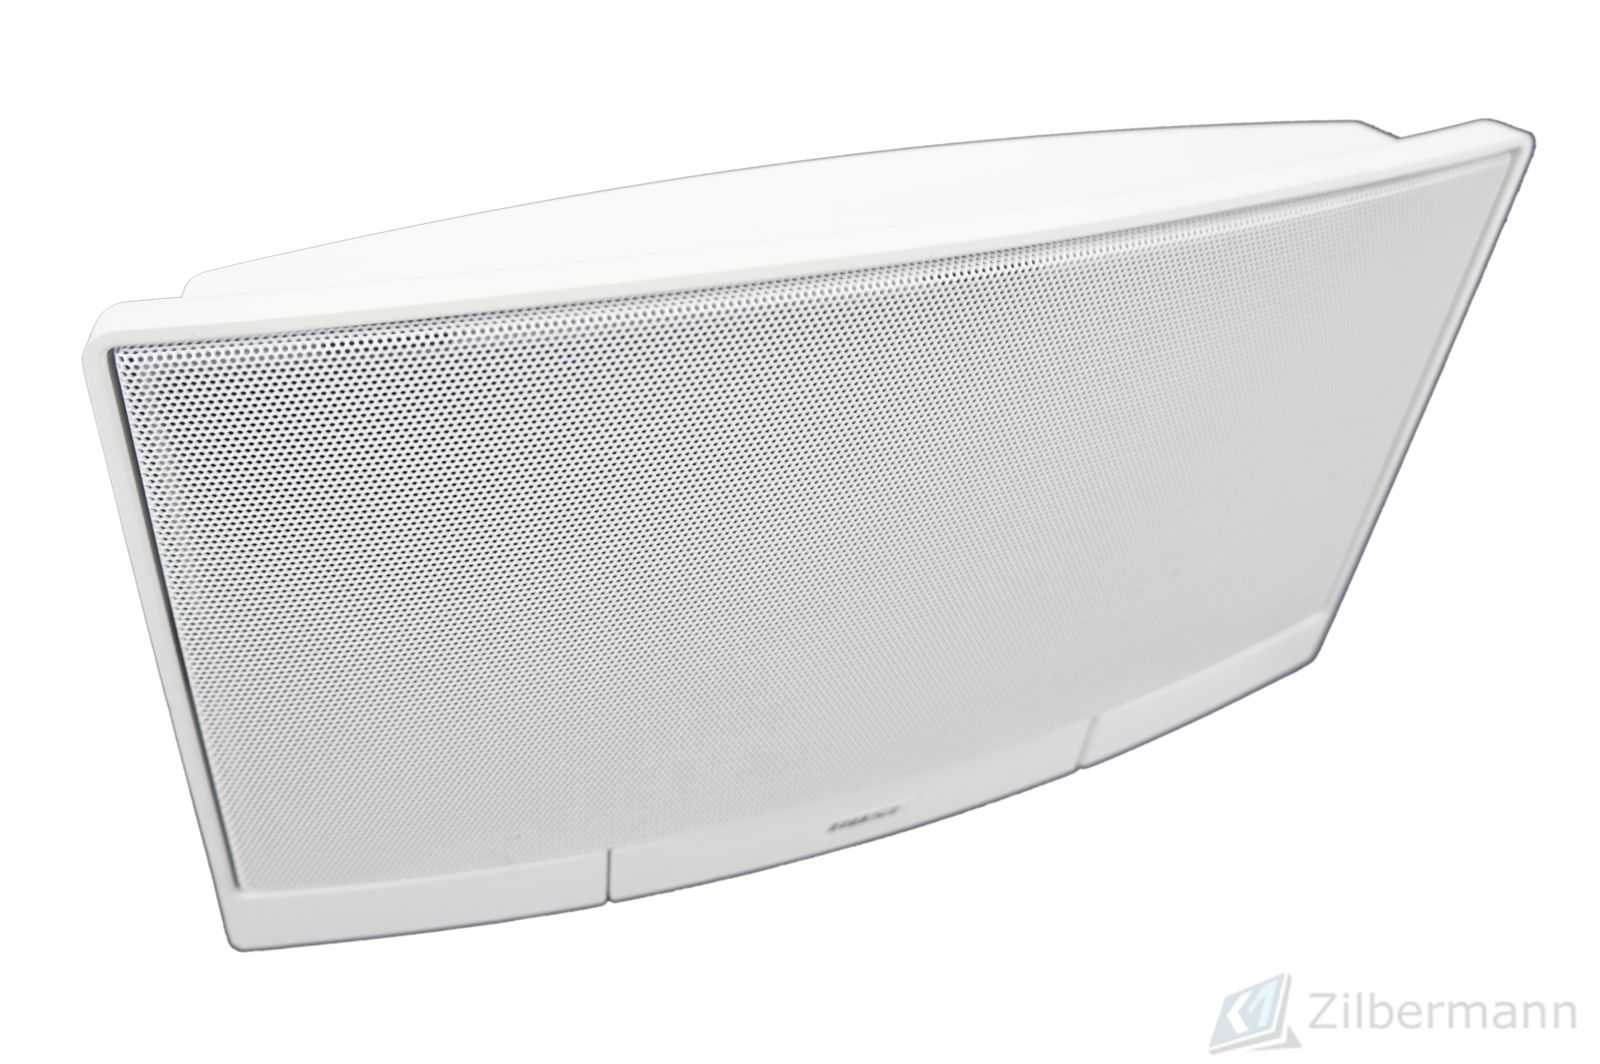 Bose_Lifestyle_Roommate_Powered_Speaker_System_Weiss_07_b3GZ9ye